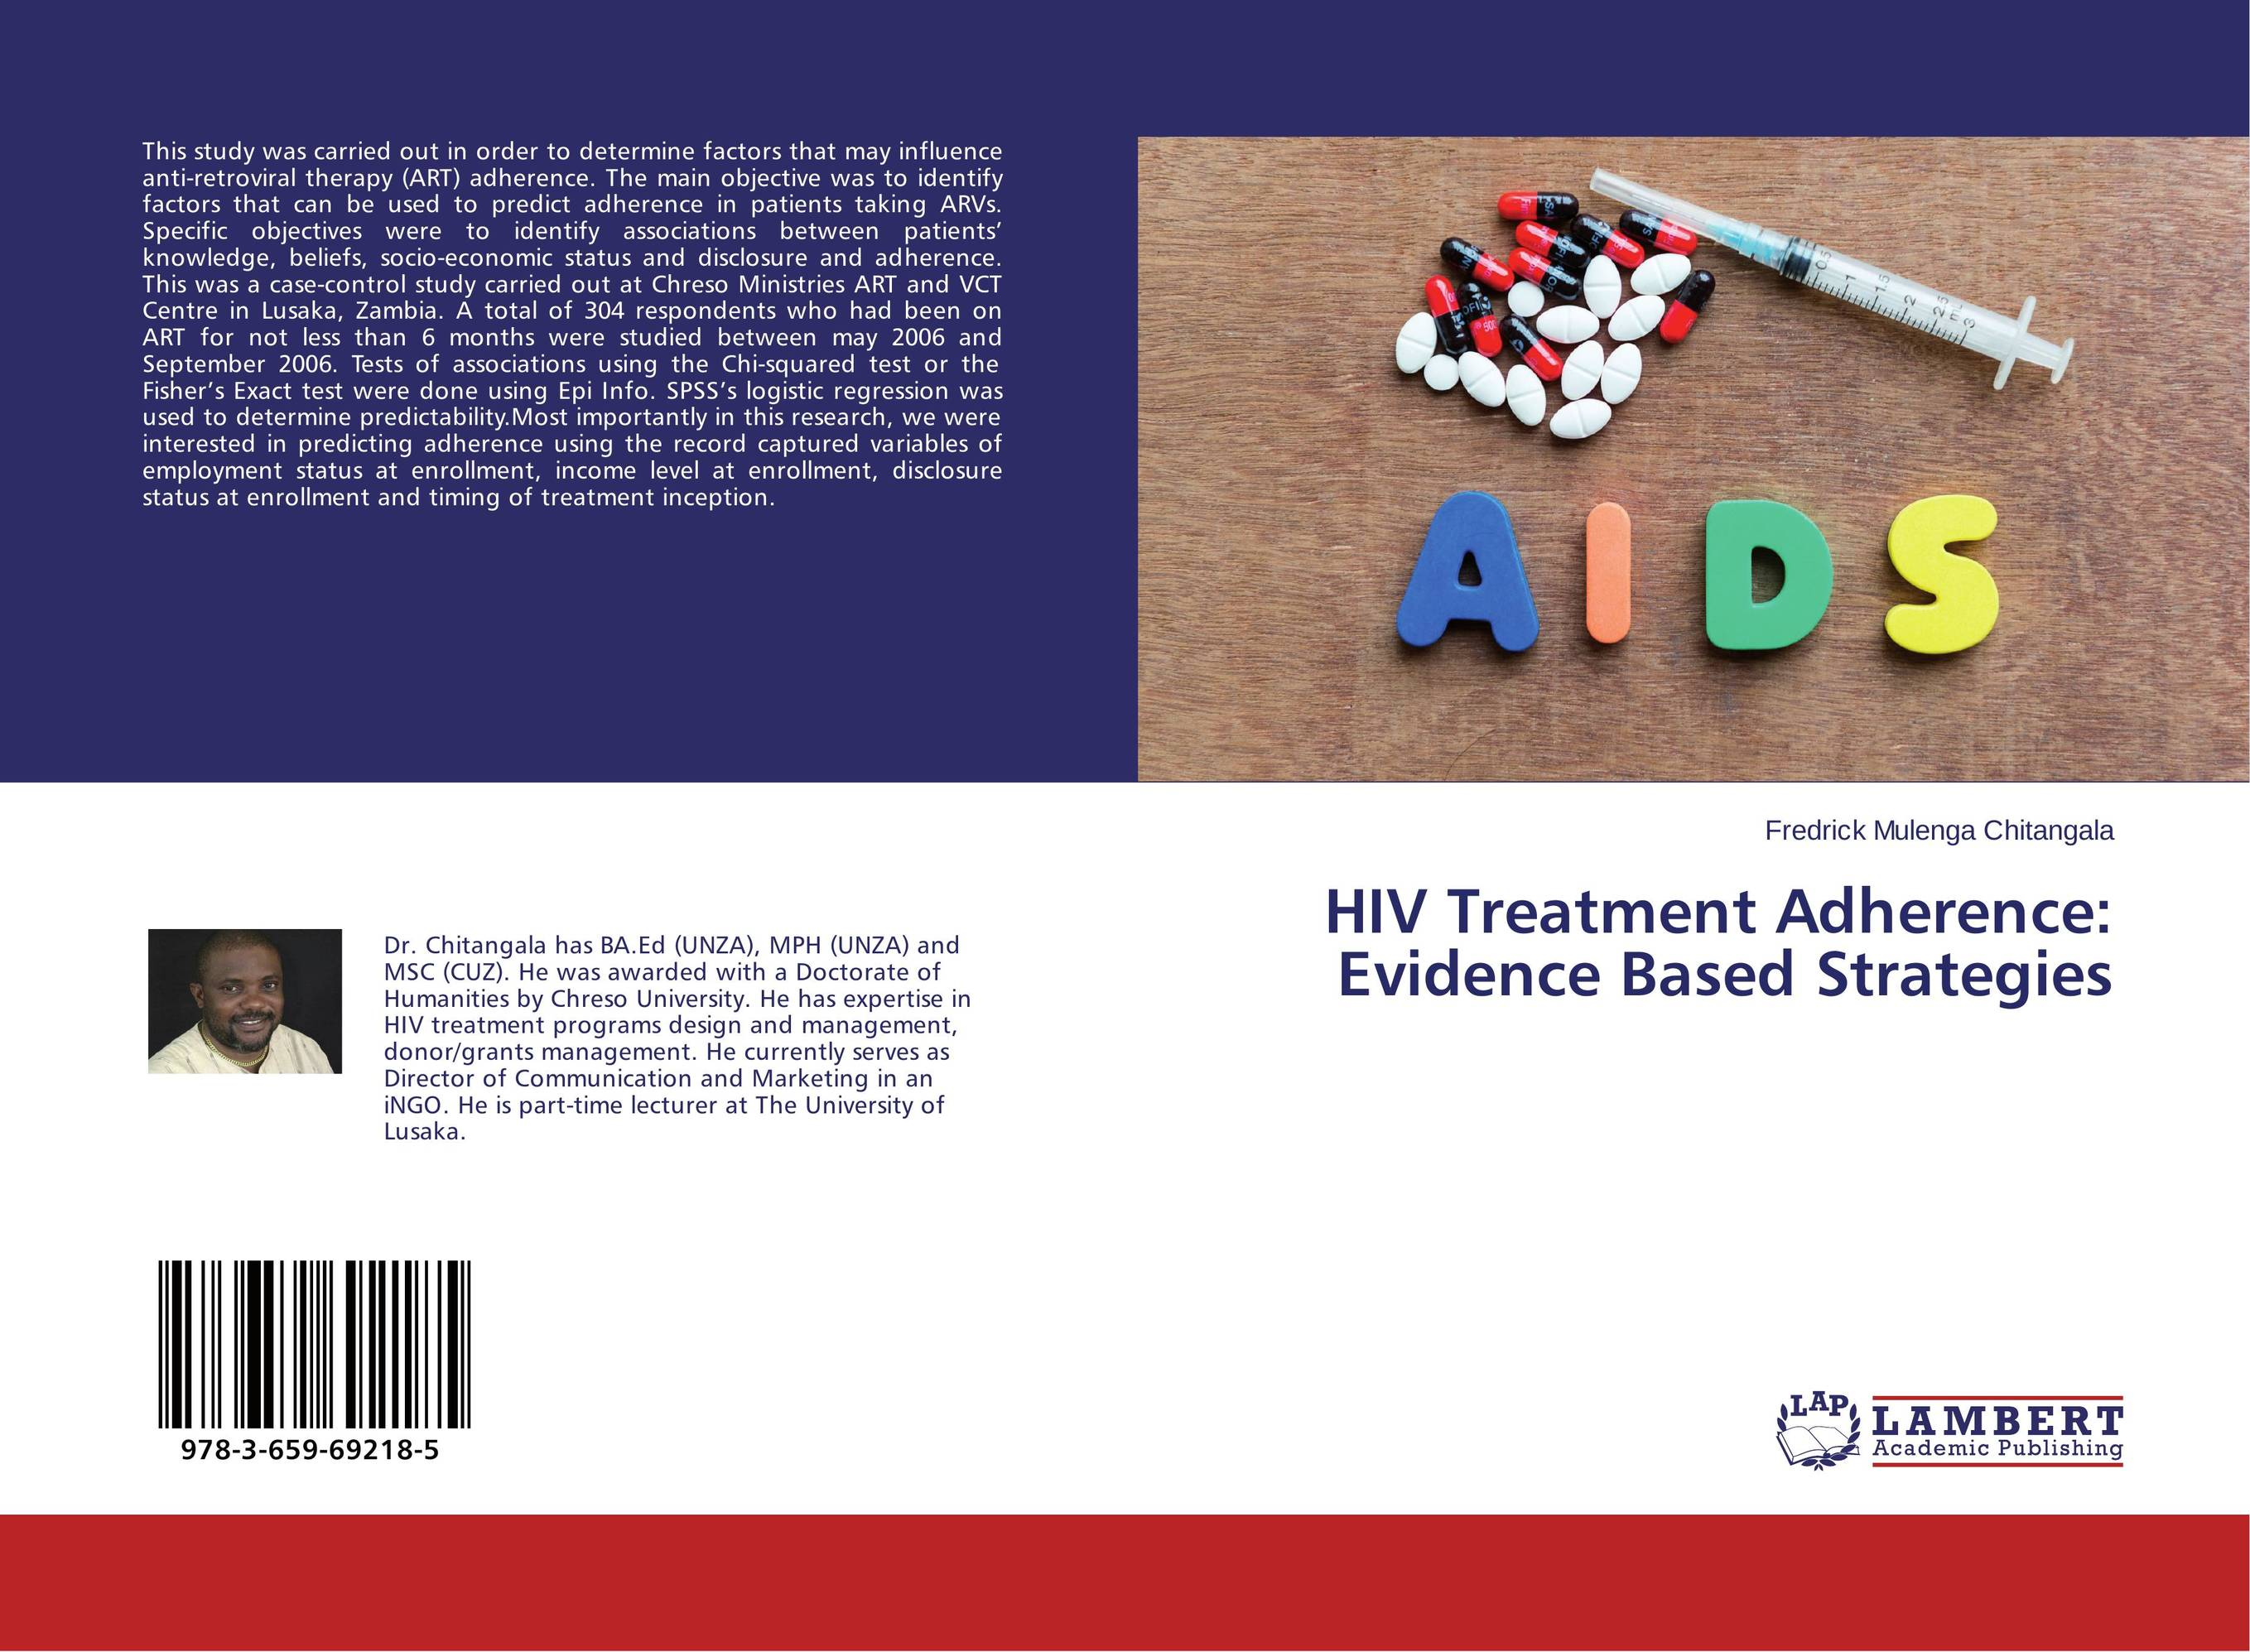 HIV Treatment Adherence: Evidence Based Strategies david lahey predicting success evidence based strategies to hire the right people and build the best team